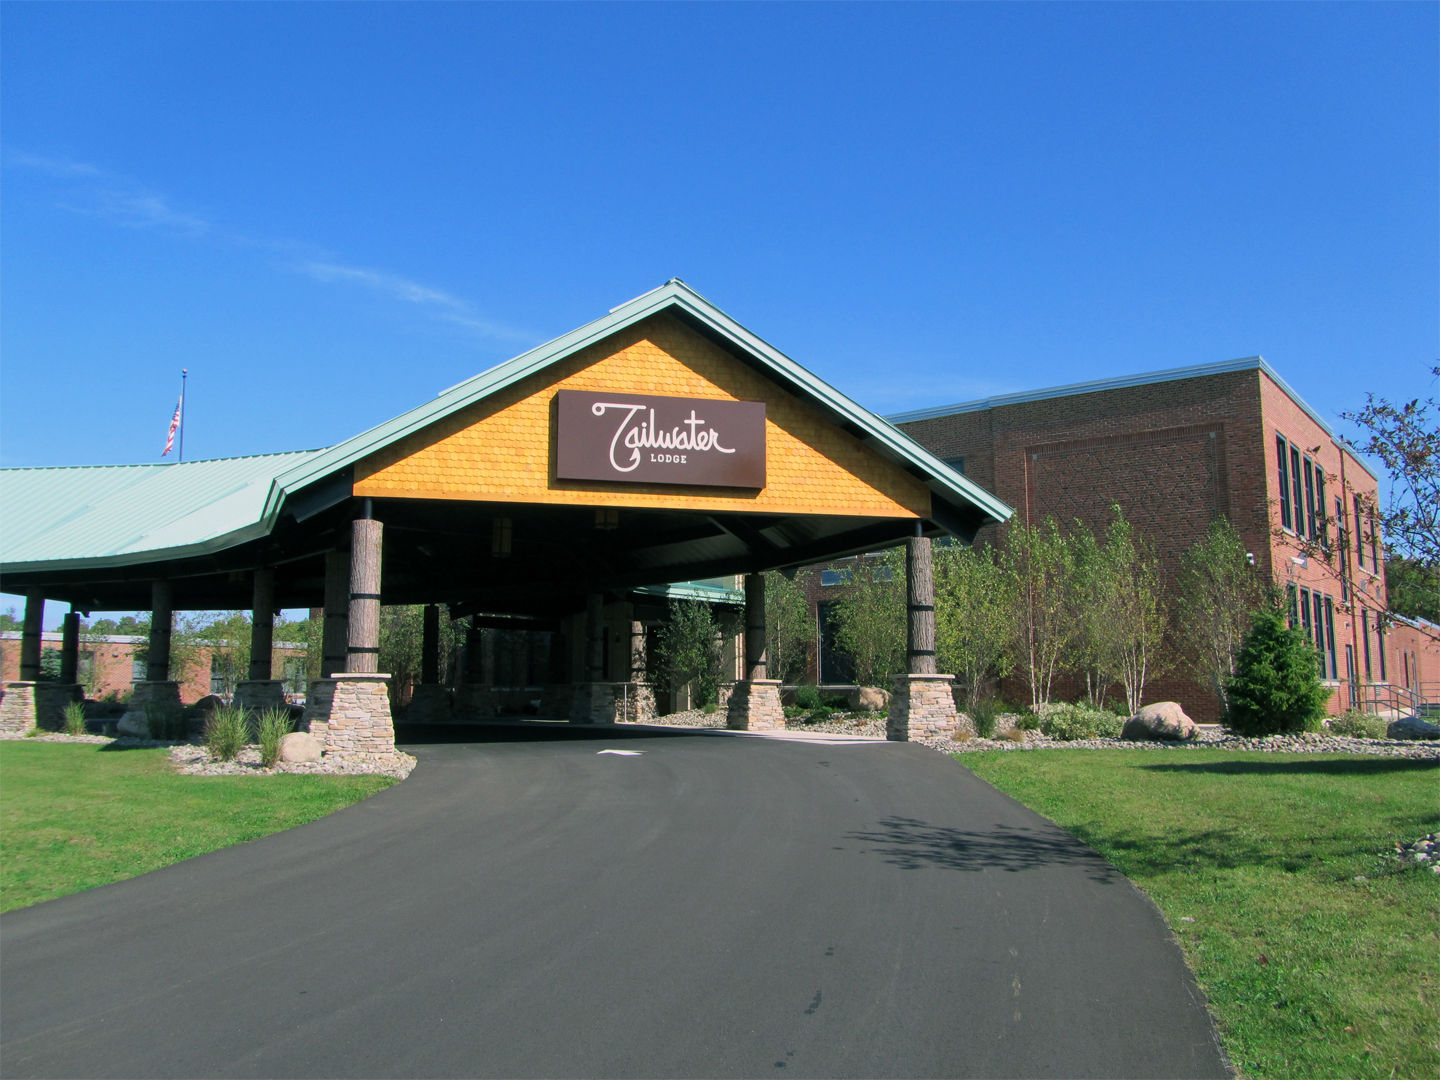 Tailwater Lodge - Entry Canopy